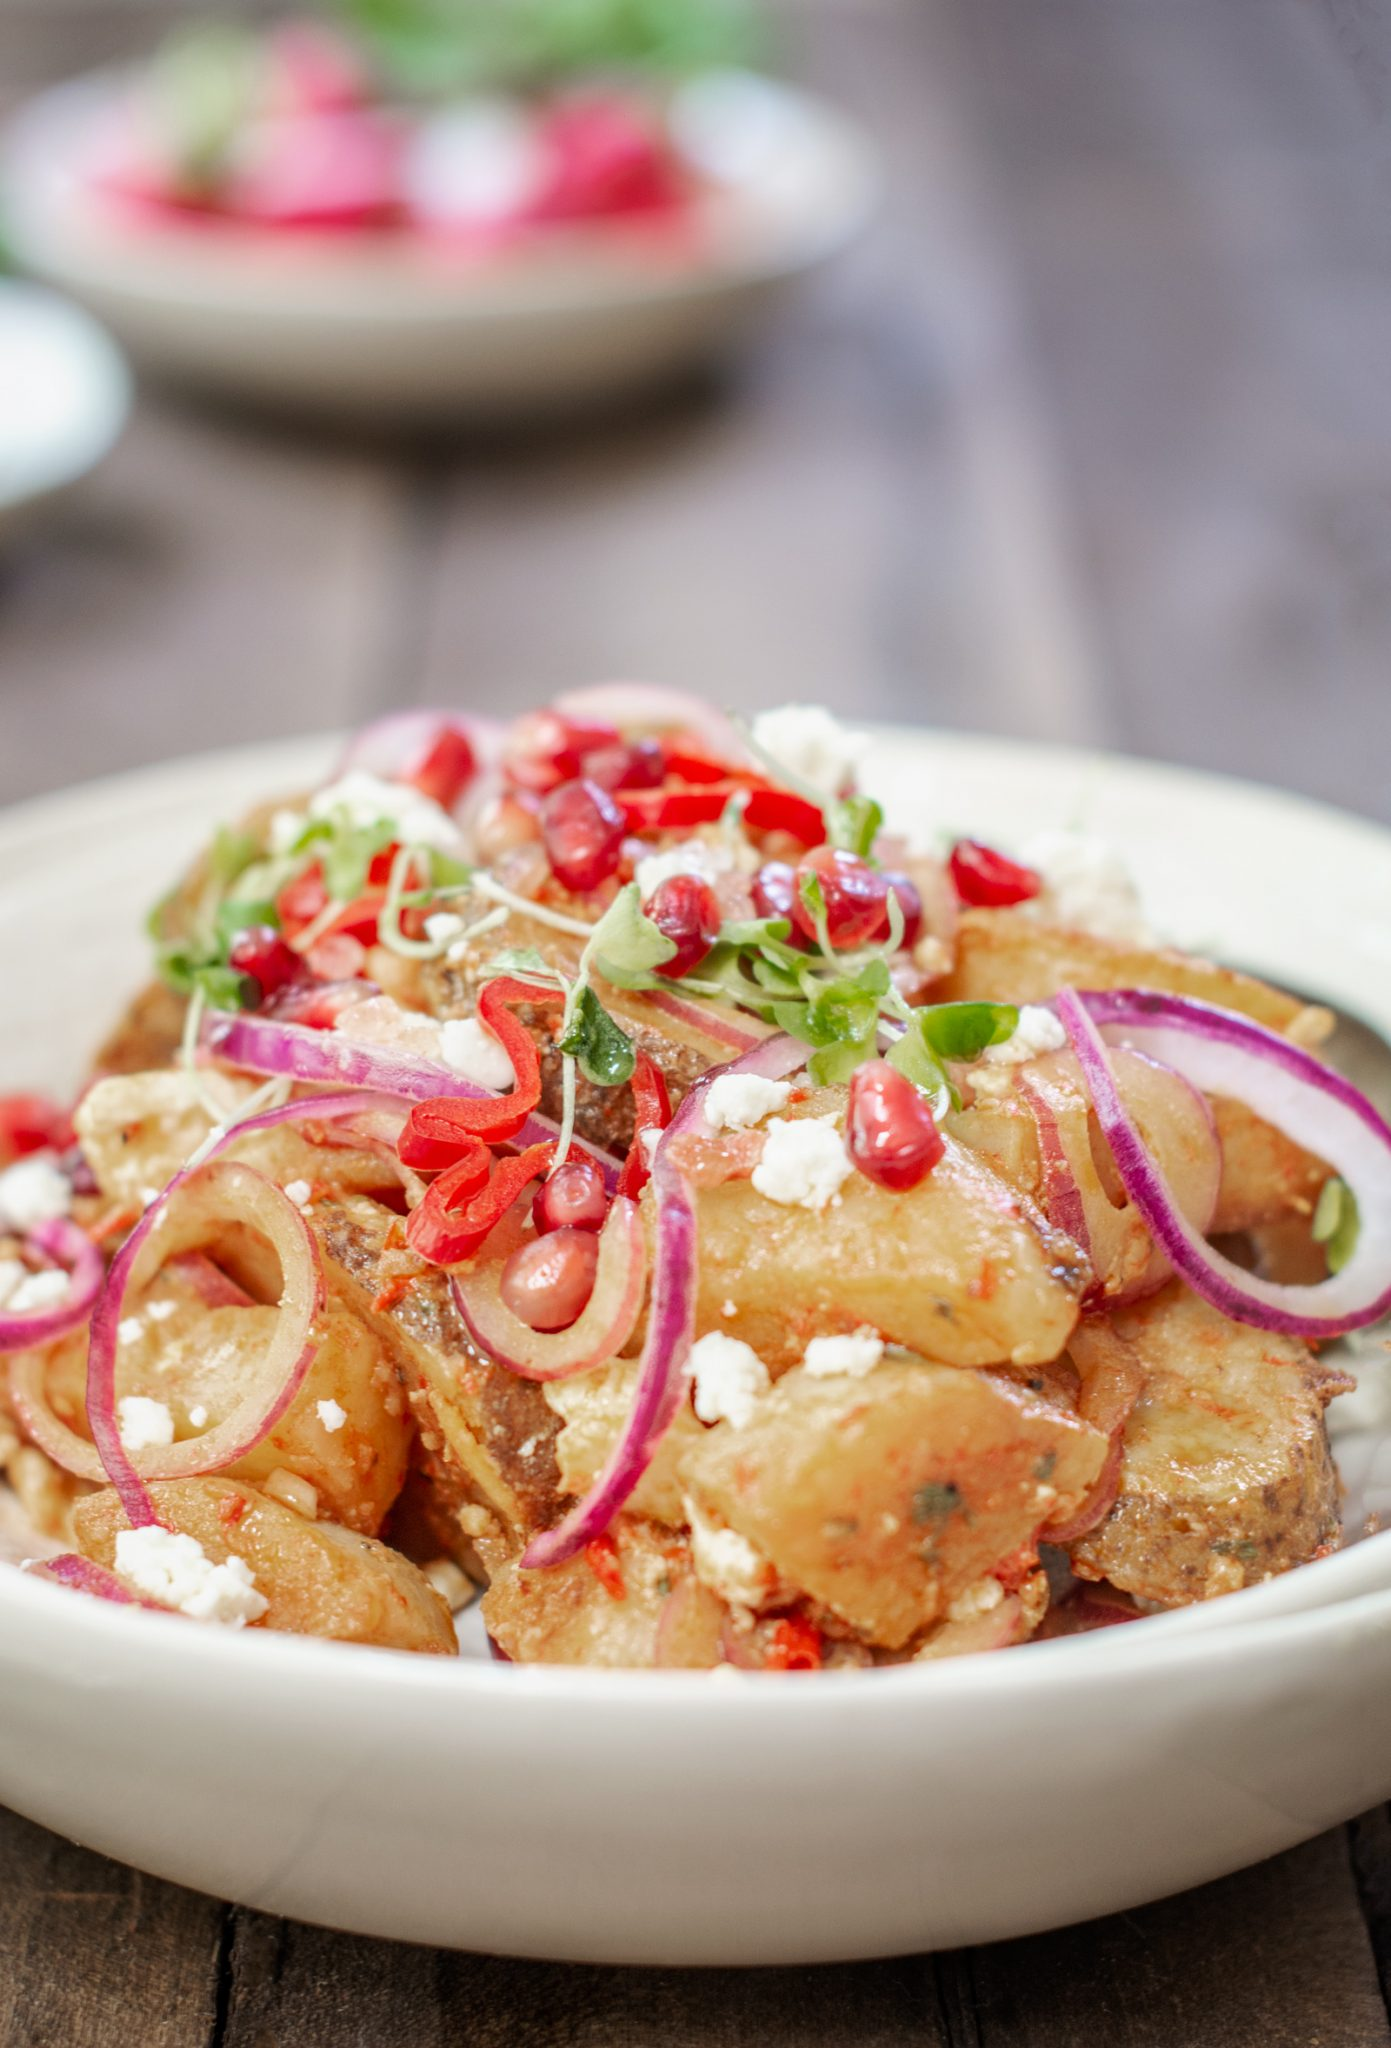 Bowl filled with Moroccan Potato Salad, pomegranate seeds and onions